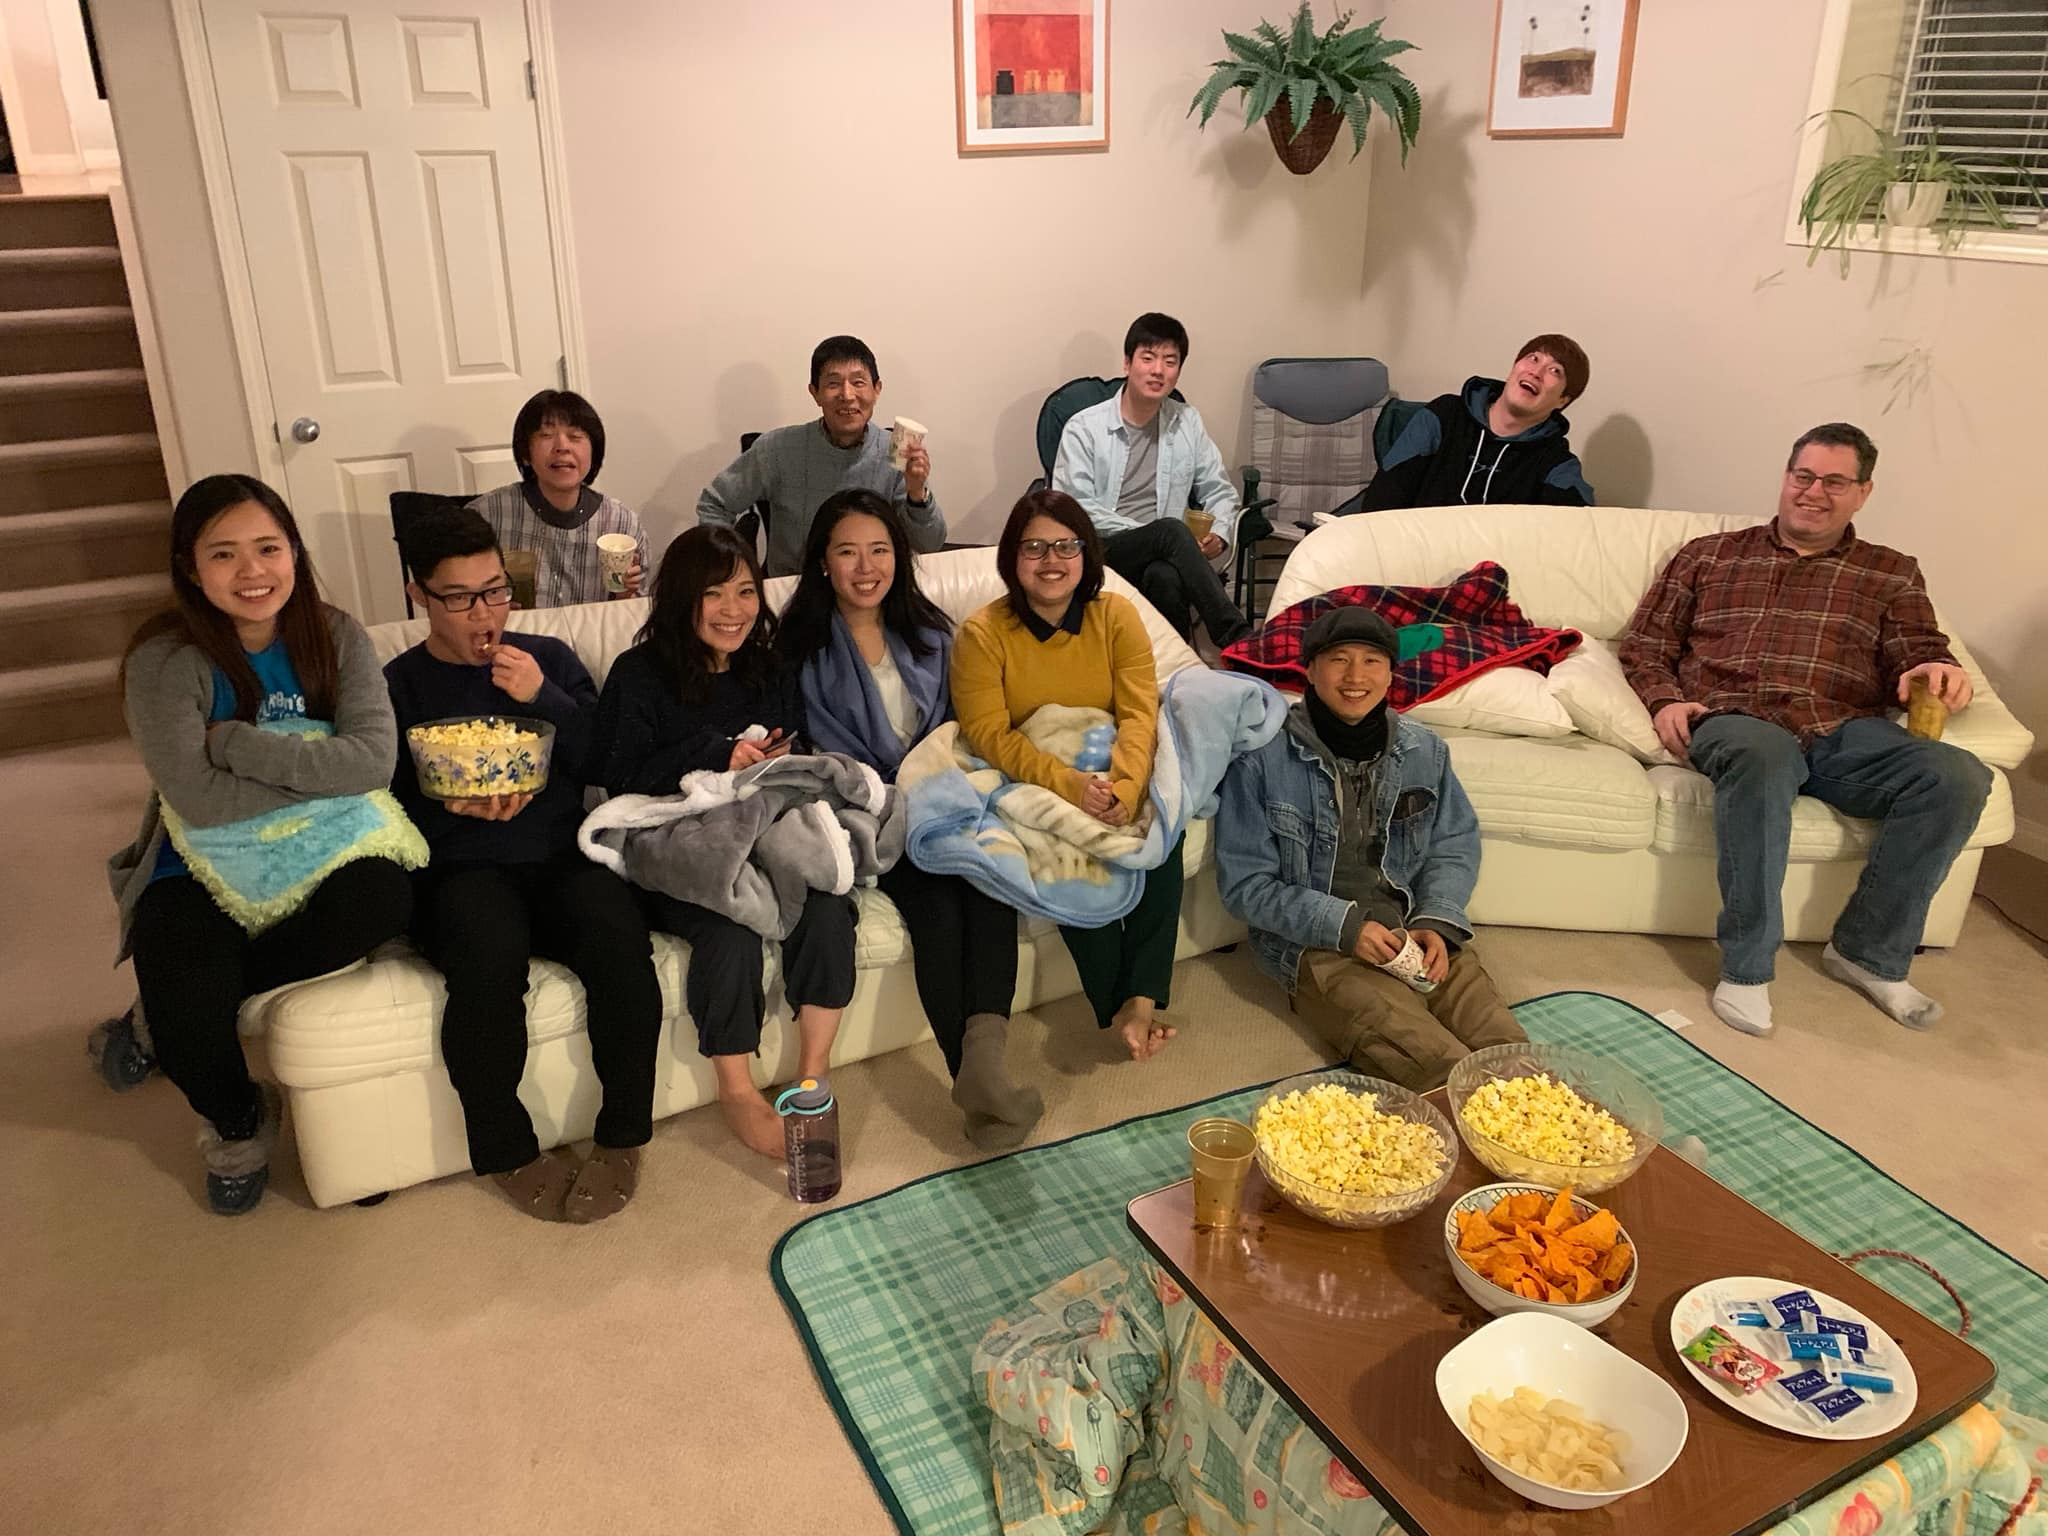 2/3 Movie night at Taniguchi's.  Curry and Popcorn!